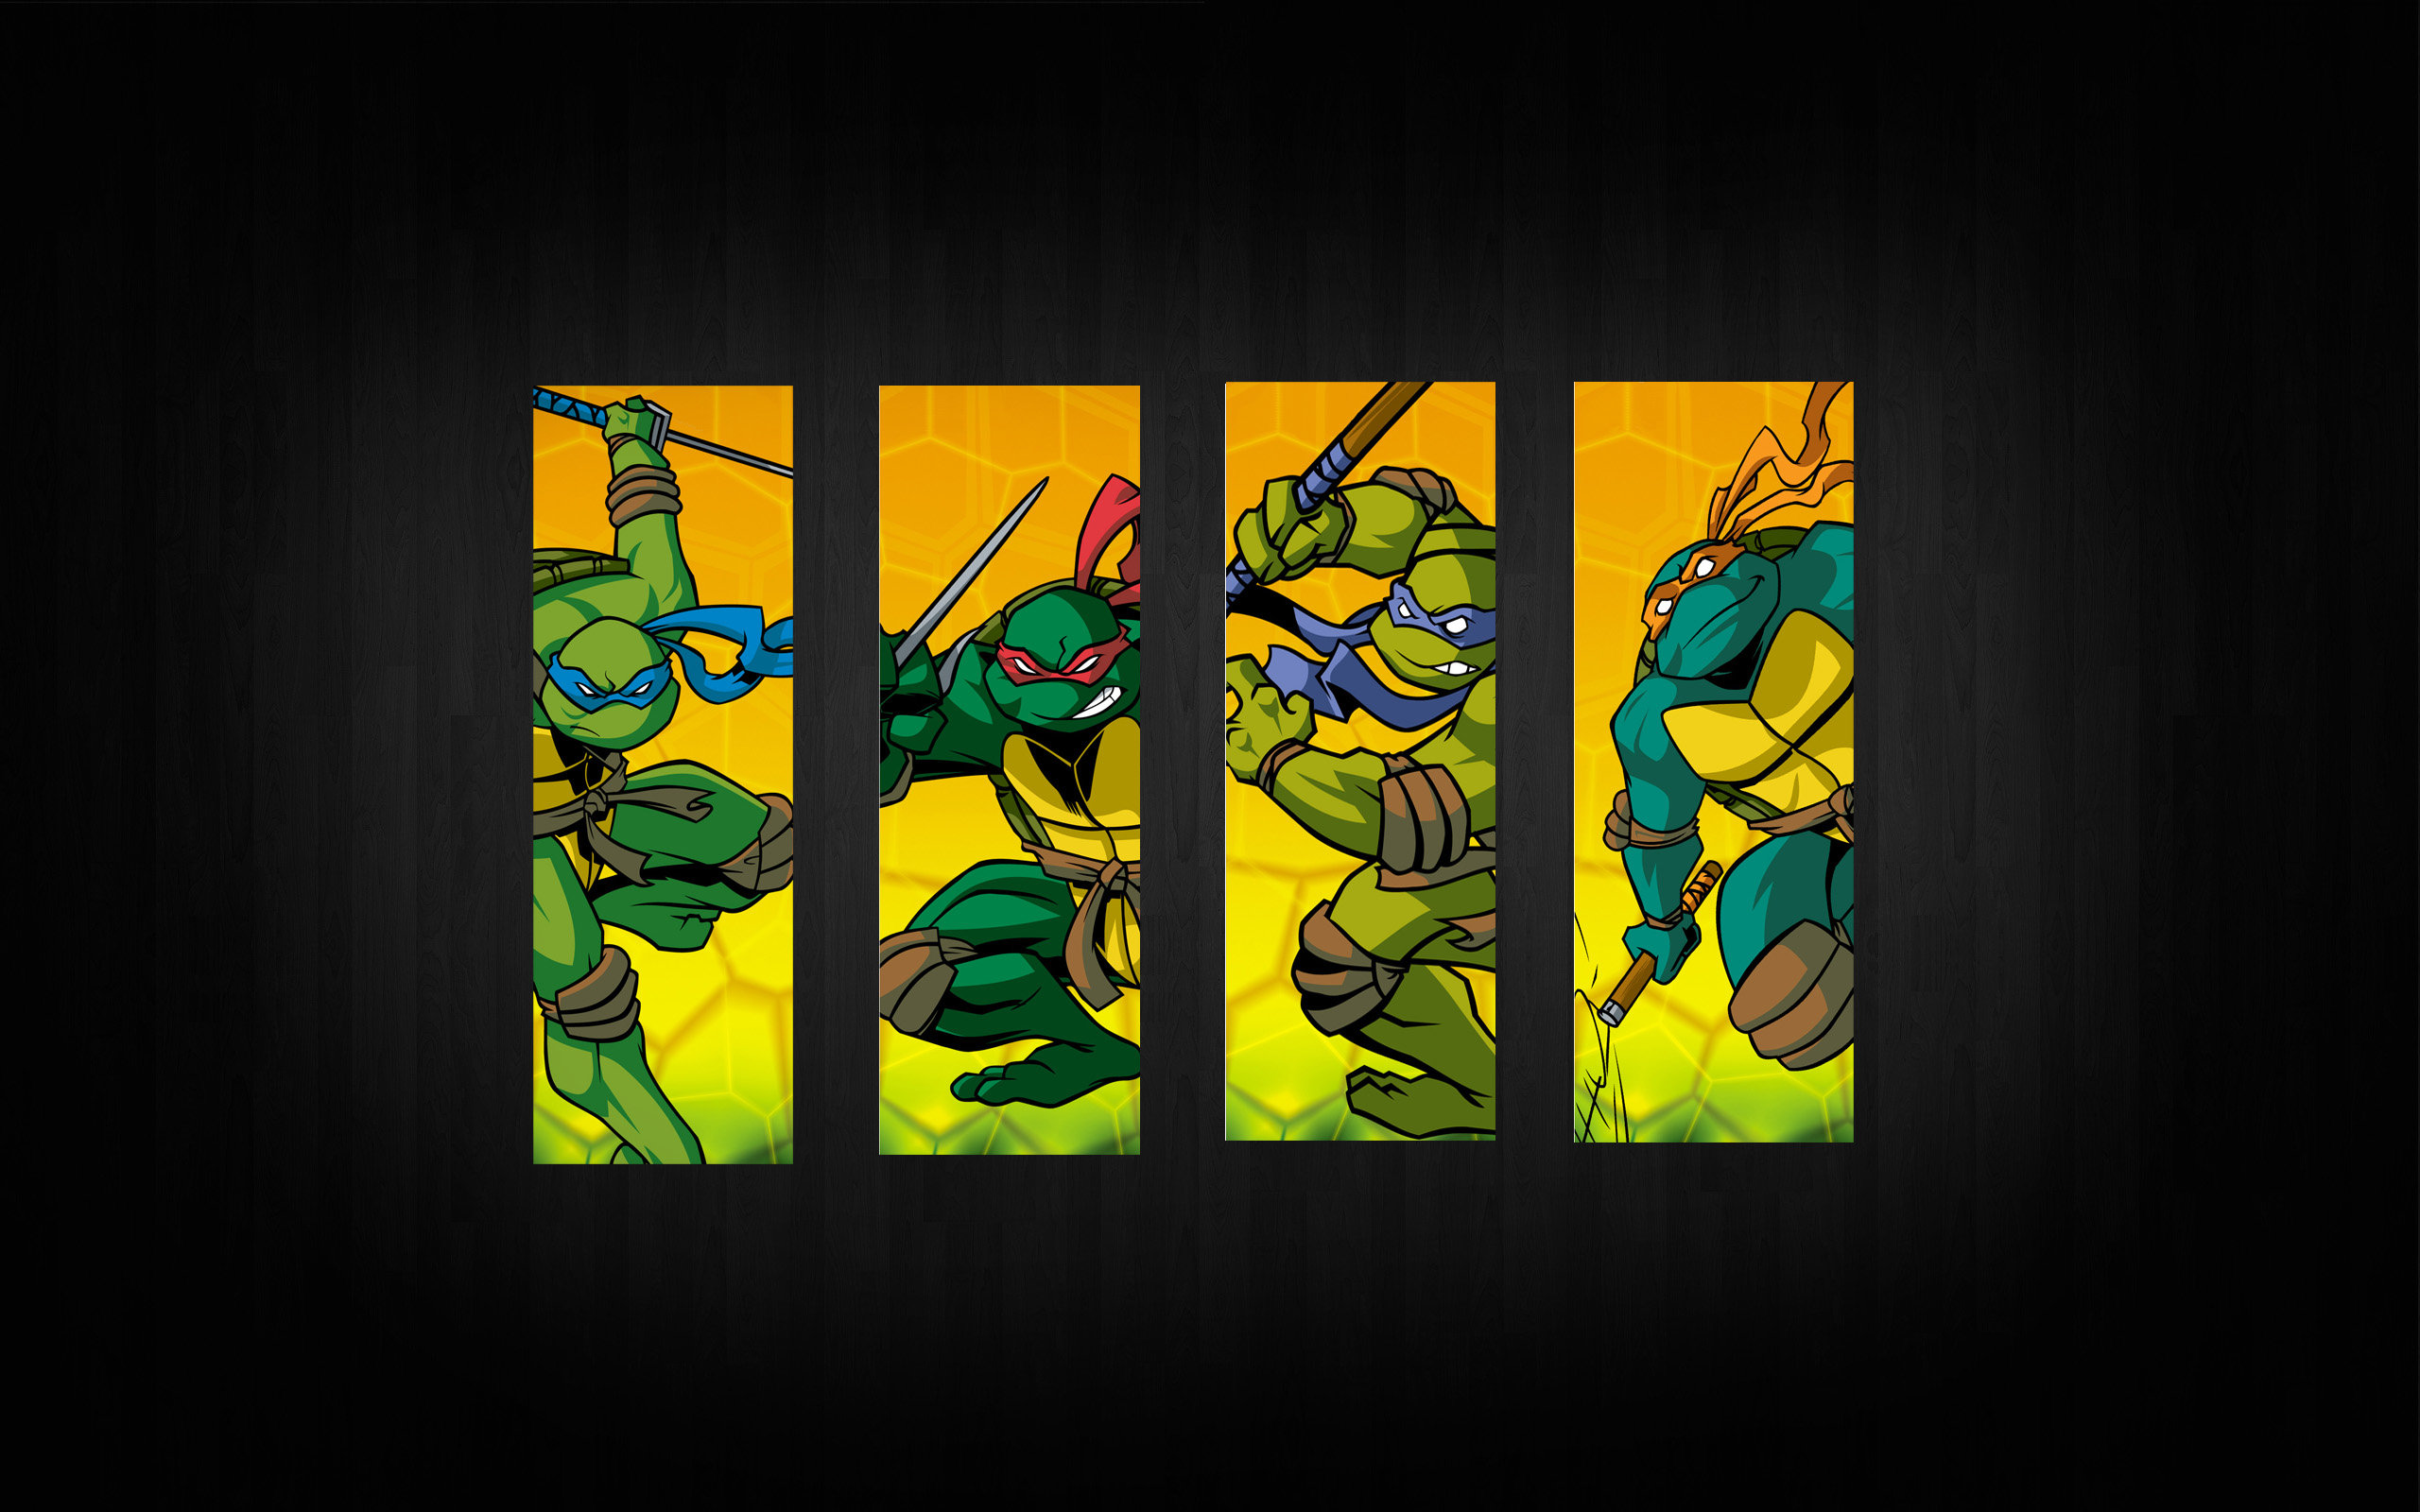 Download Hd 2560x1600 Teenage Mutant Ninja Turtles Tmnt Desktop